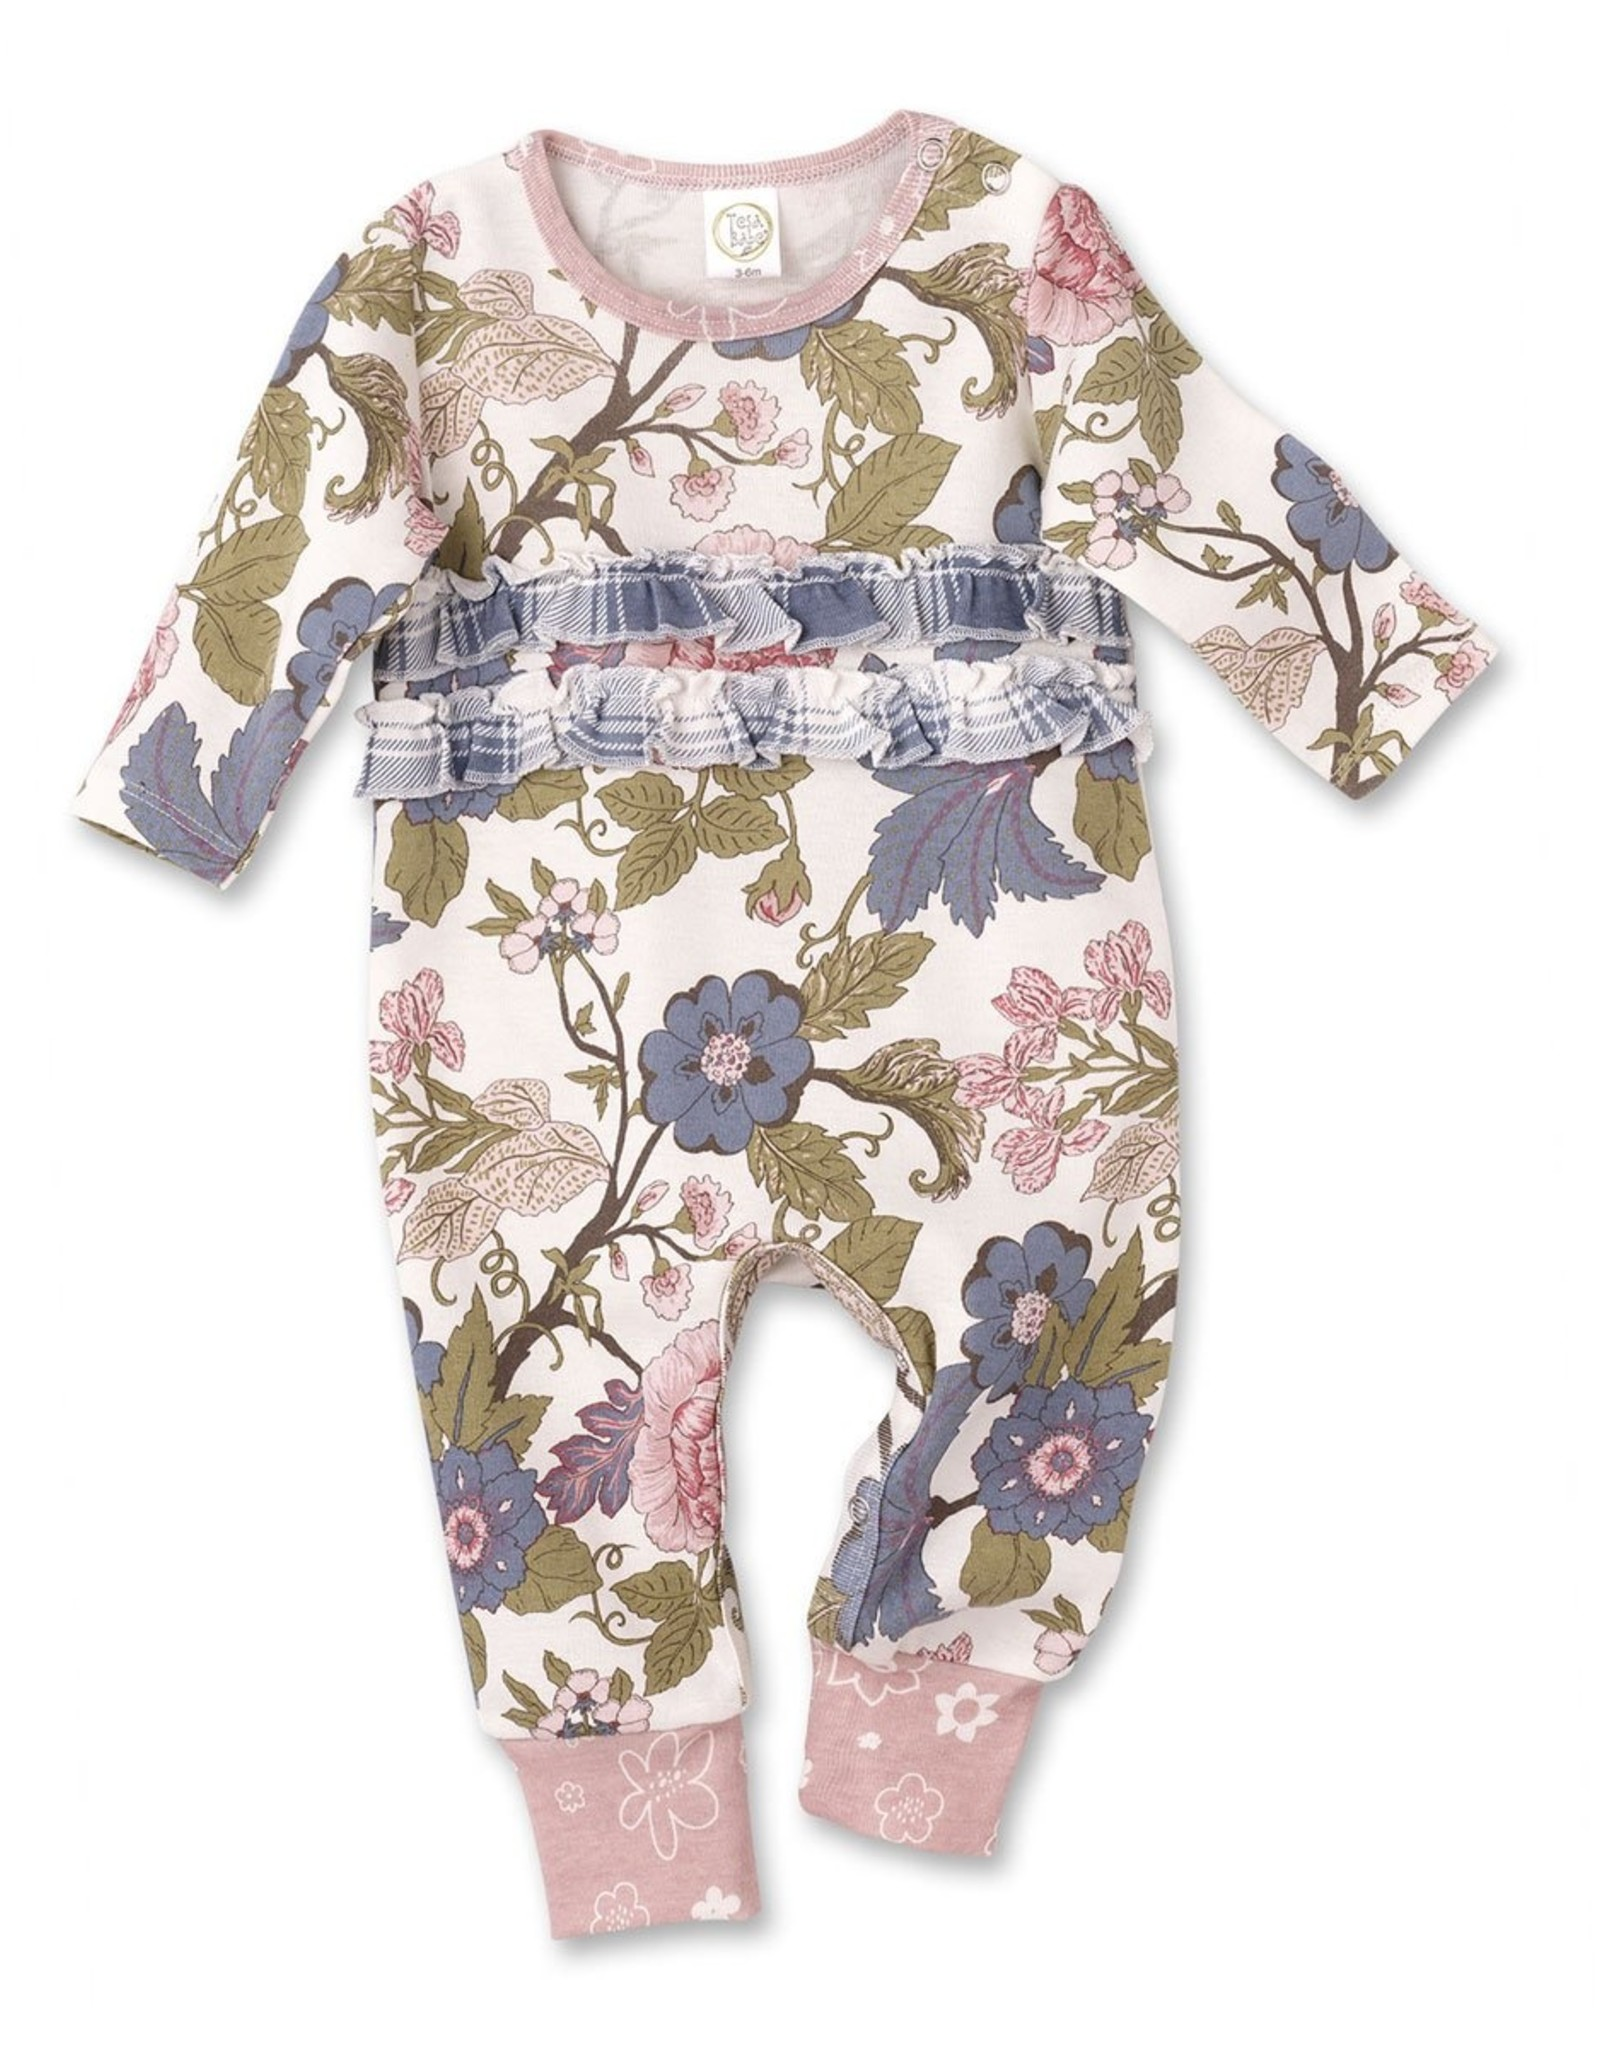 Floral Tapestry Ruffle Romper 6-12